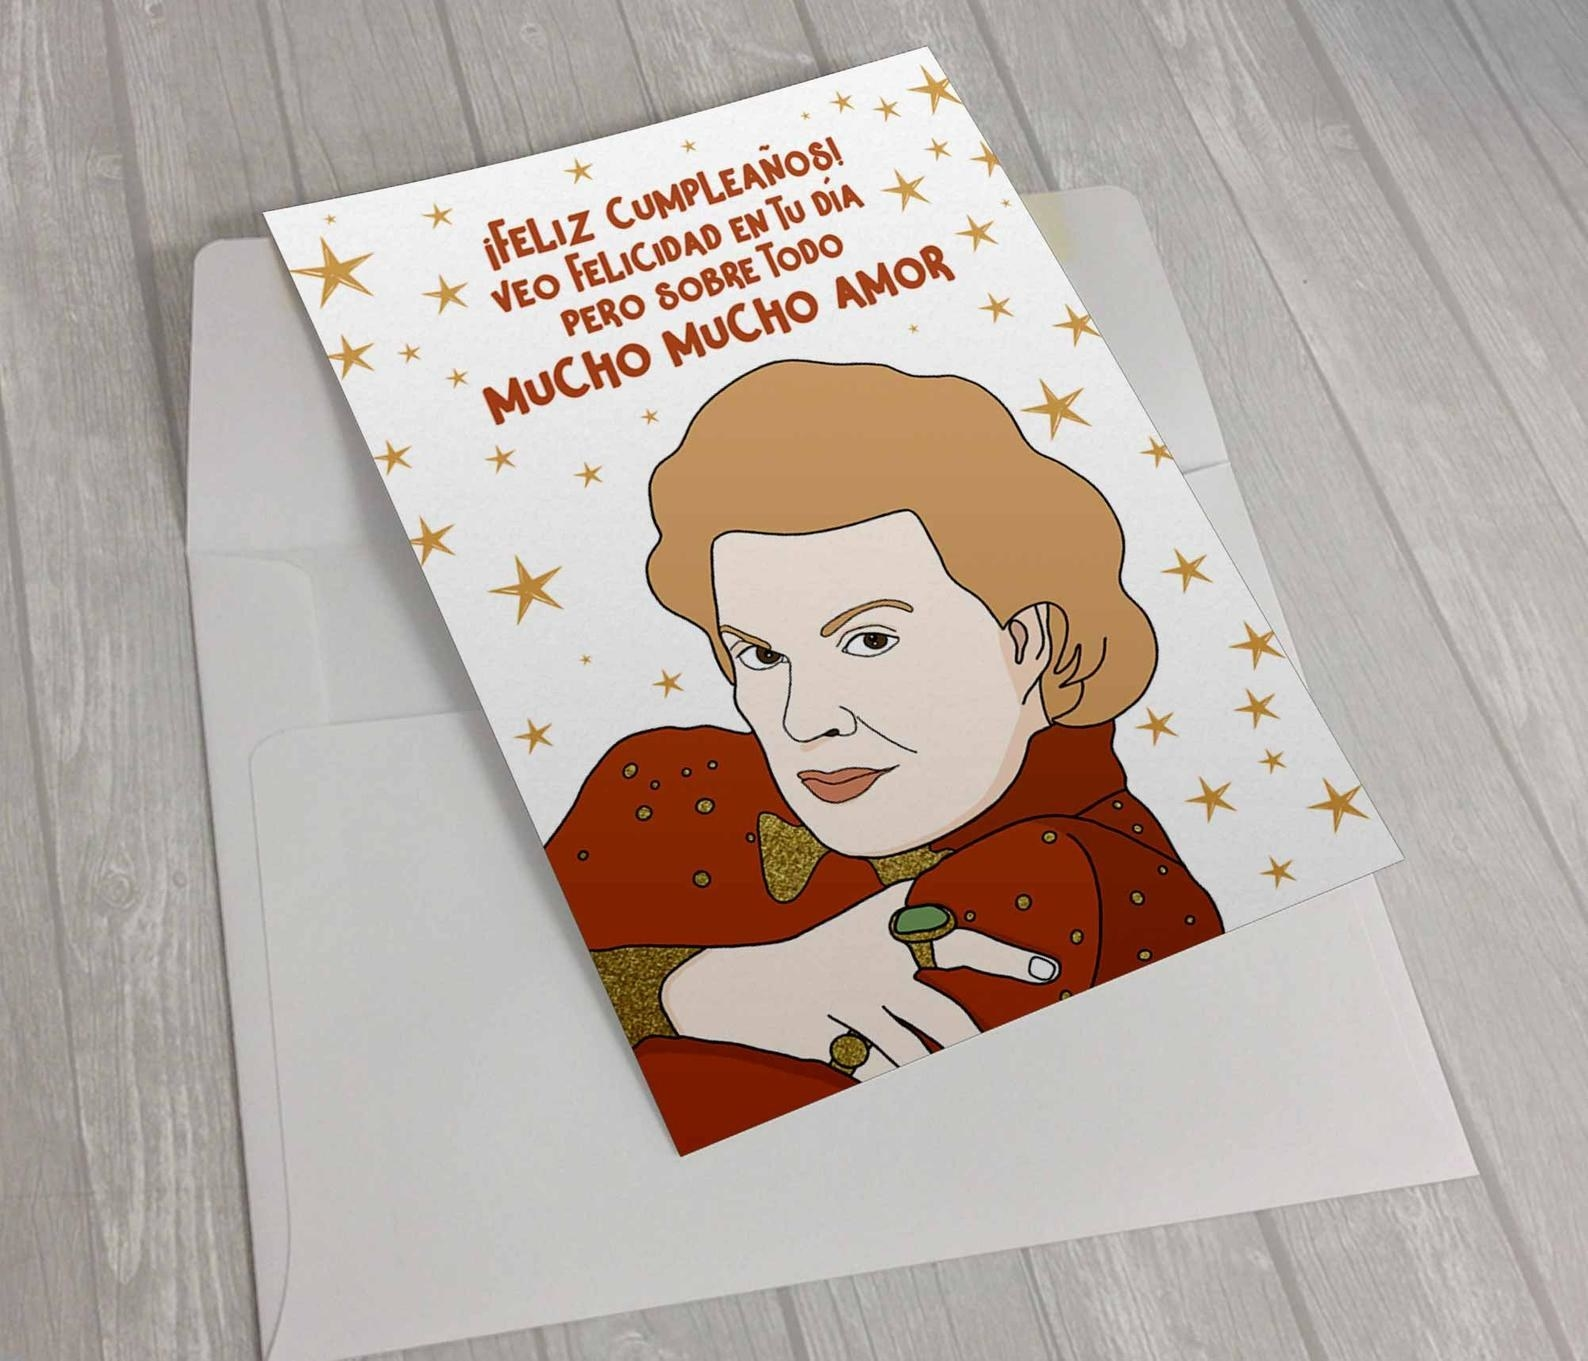 """A greeting card with an illustrated of Walter Mercado wishing a Happy Birthday and """"Mucho mucho amor"""""""